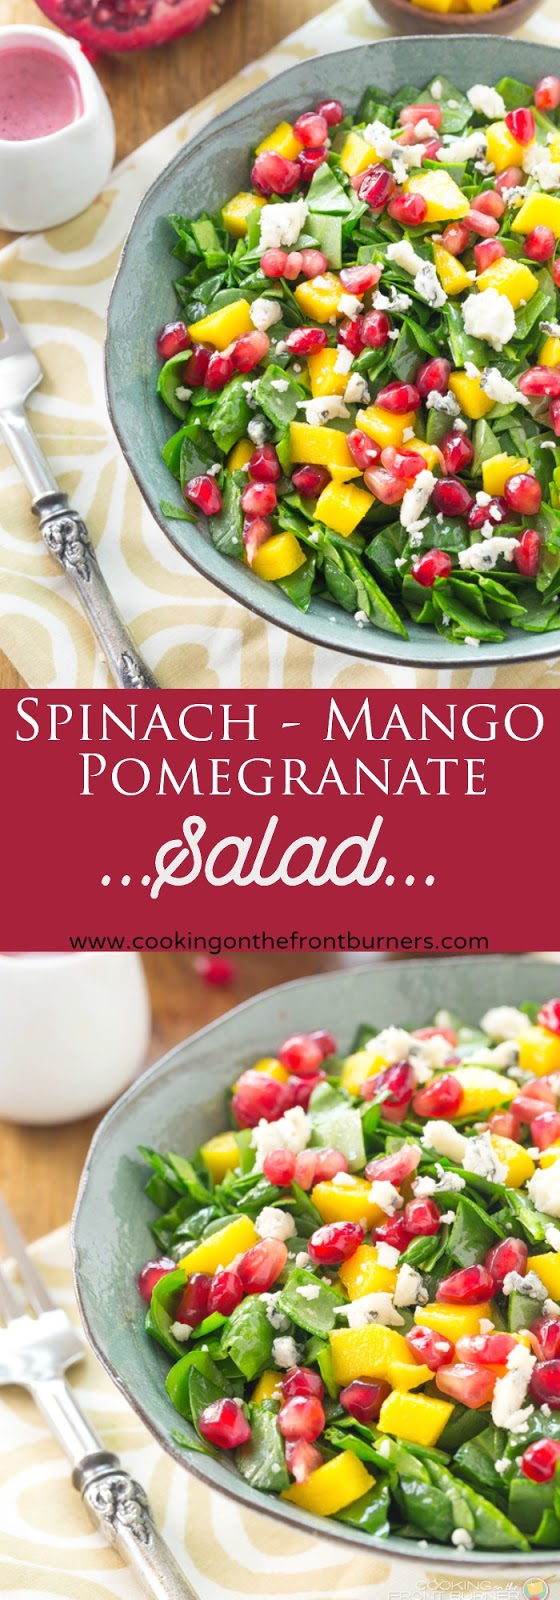 Chopped Spinach Pomegranate Salad   Cooking on the front Burner